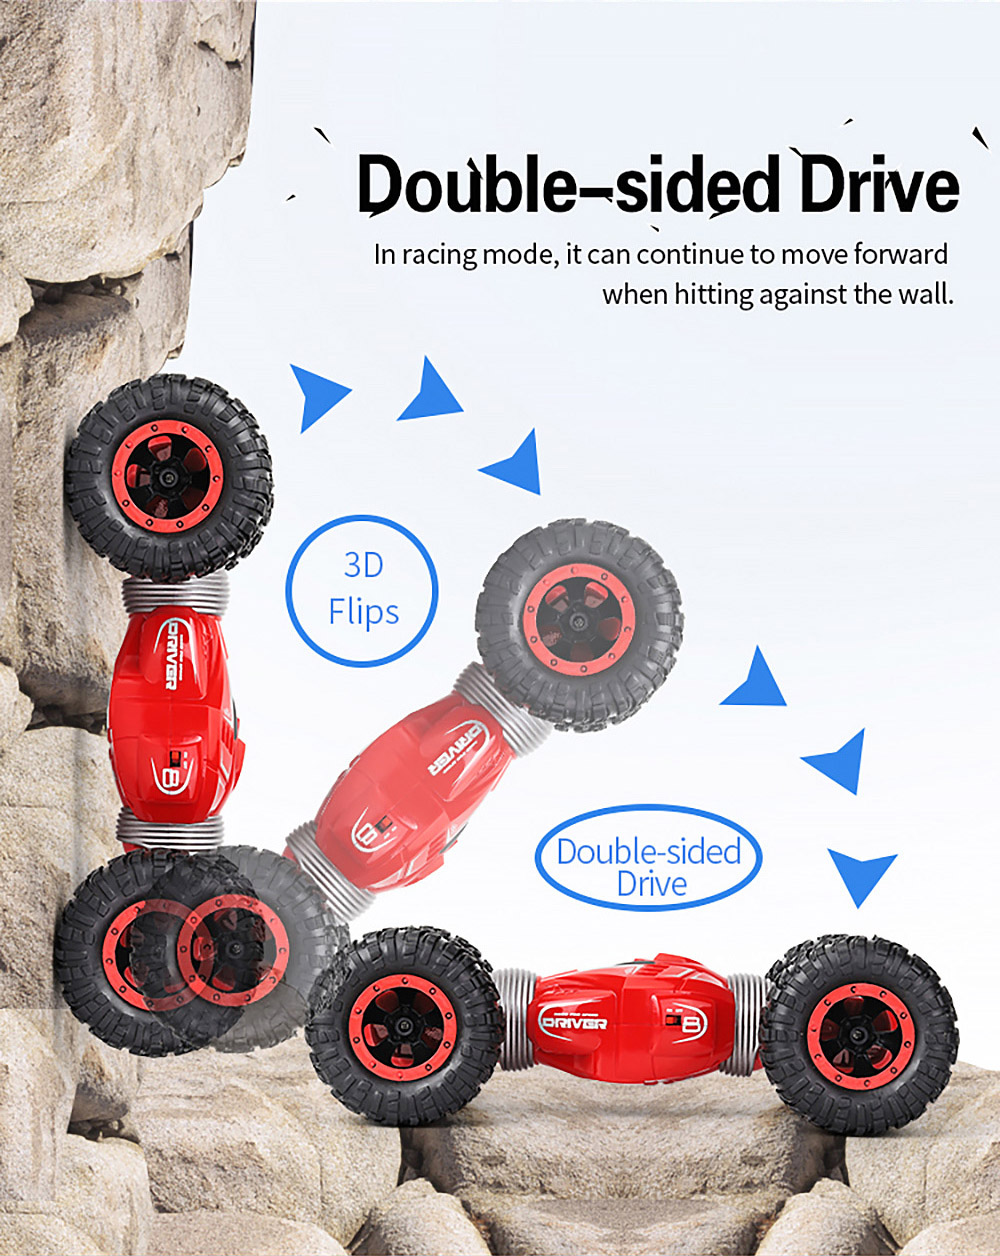 JJRC Q70 Twister Double-sided Flip Deformation Climbing Remote Control Car - Red Three batteries